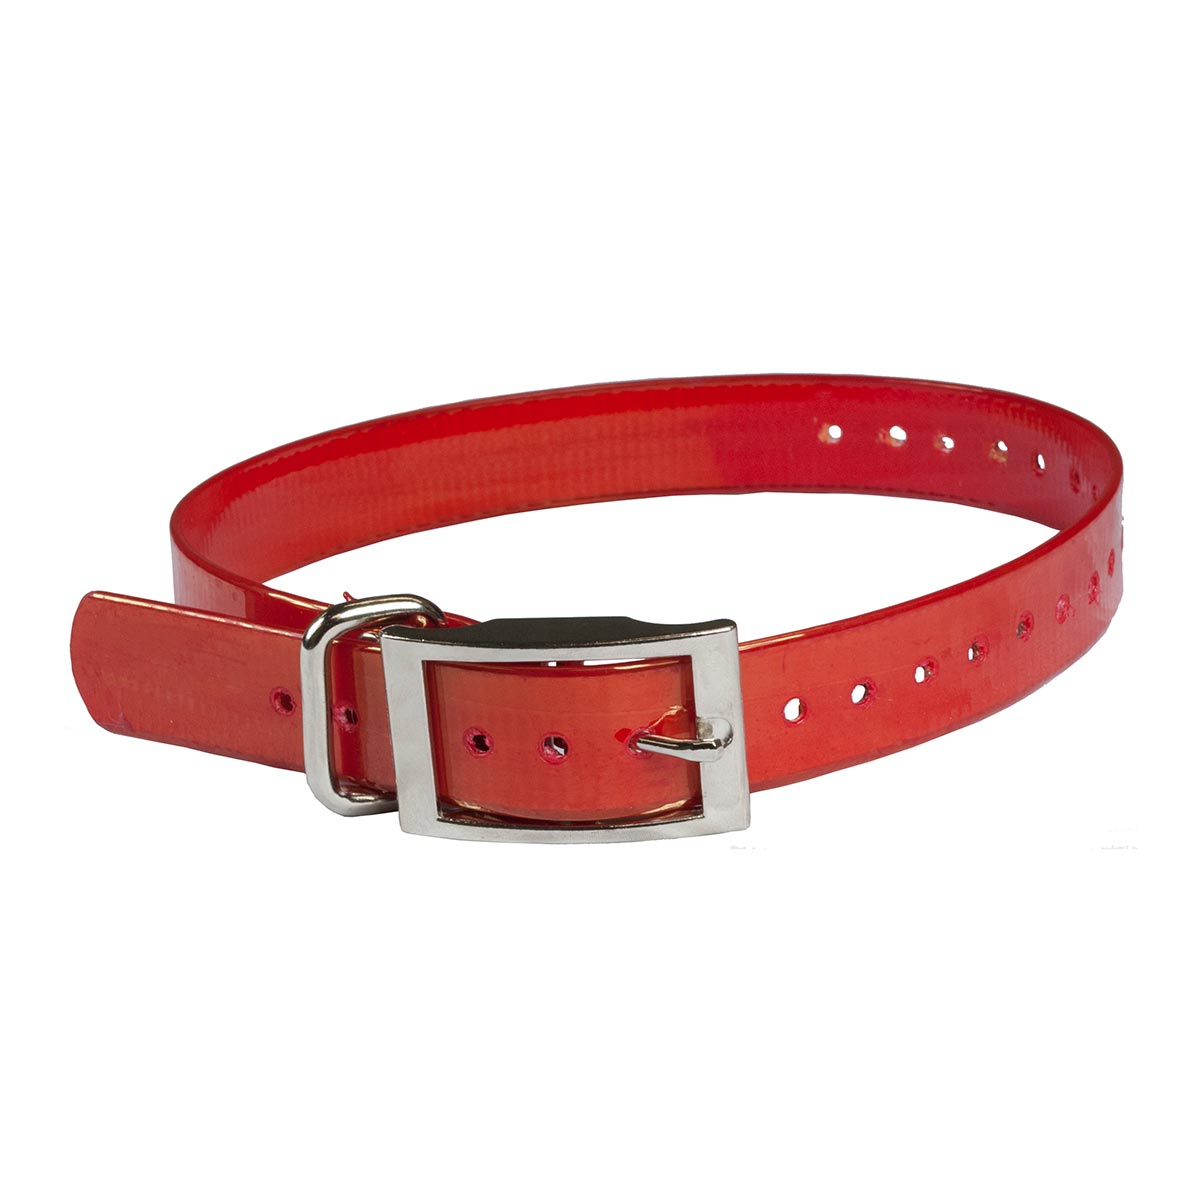 "The Buzzard's Roost Collar Strap 1"" Red 1"" x 24"" Dog GPS Tracking - London the Local"